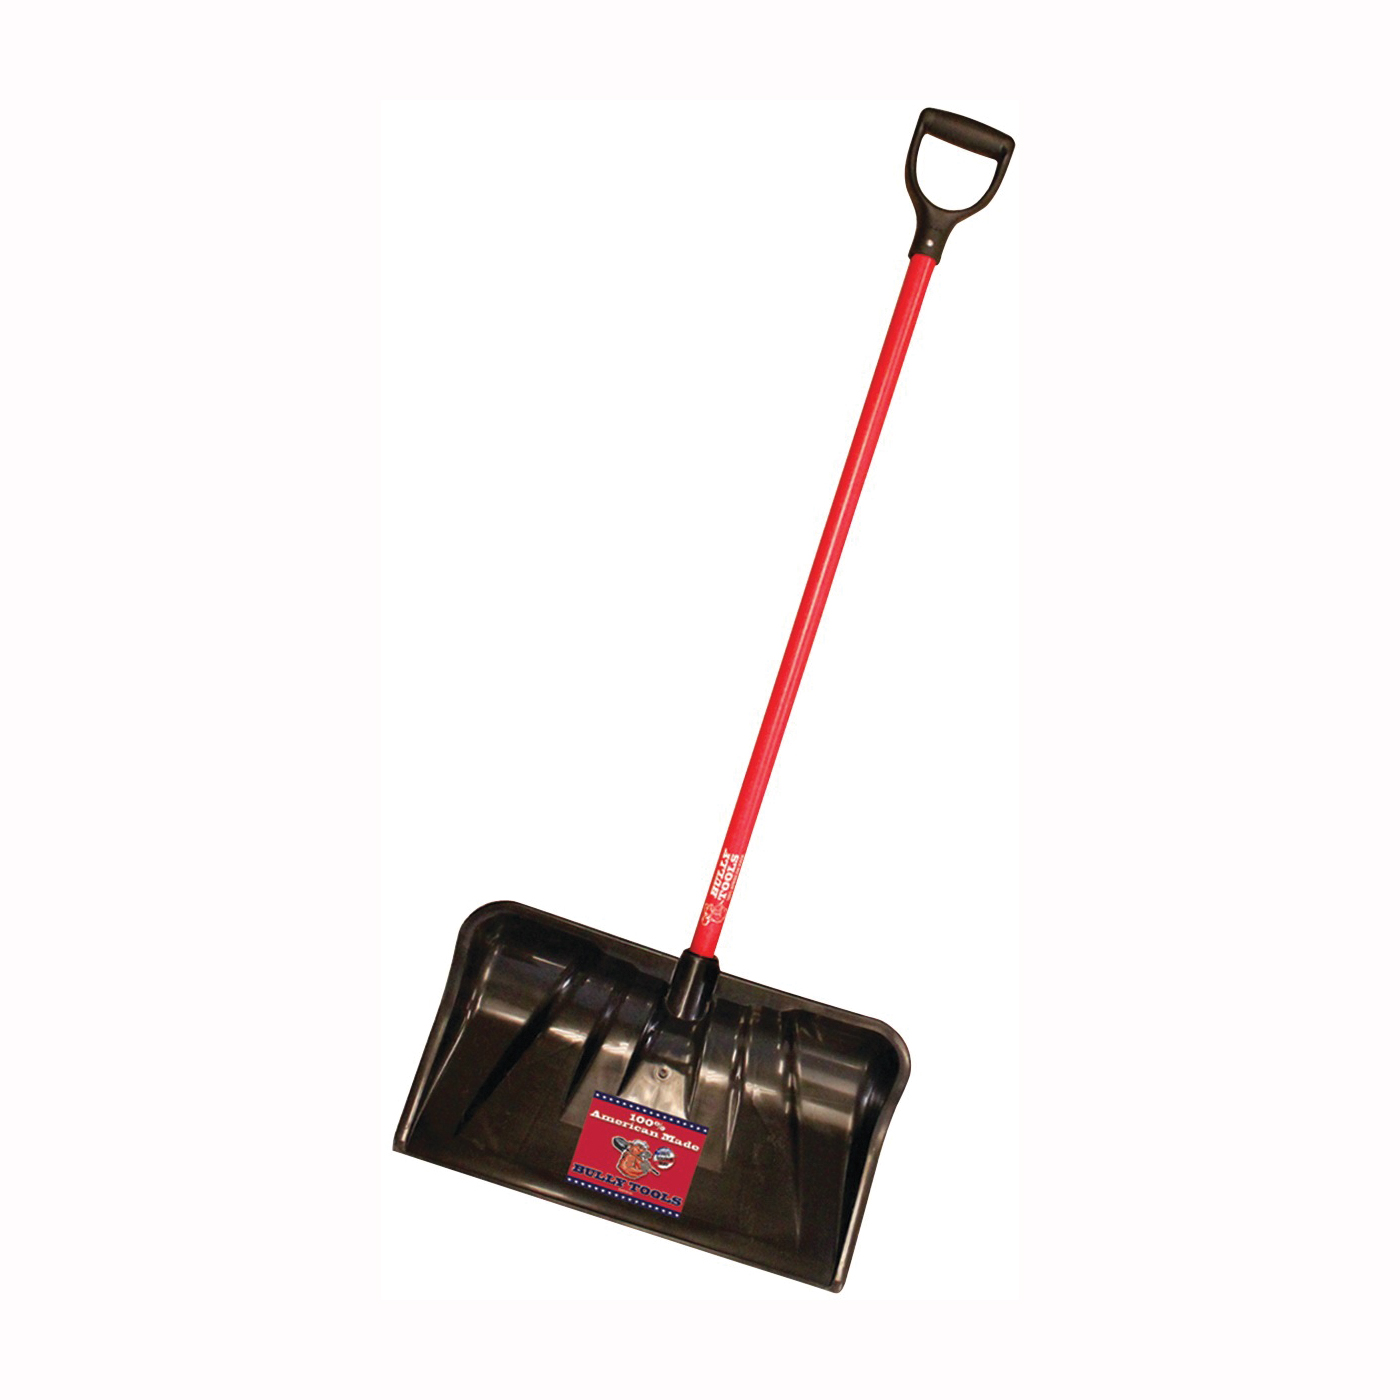 Picture of BULLY Tools 92814 Snow Shovel, 22 in W Blade, 19-3/4 in L Blade, Plastic Blade, Fiberglass Handle, 56 in OAL